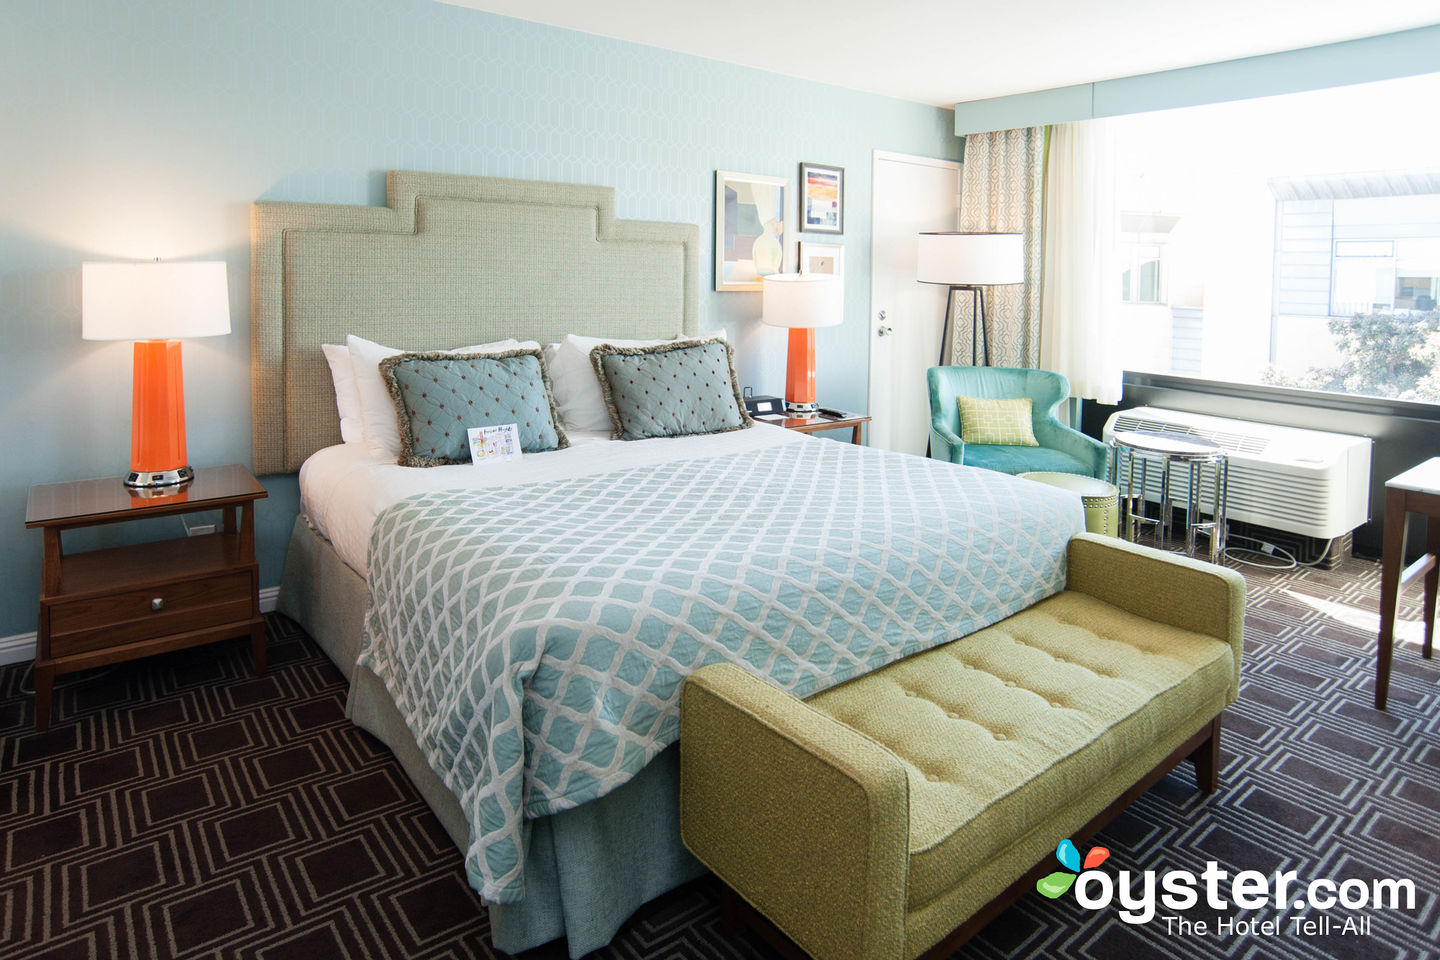 Laurel Inn A Joie De Vivre Hotel Review What To Really Expect If You Stay